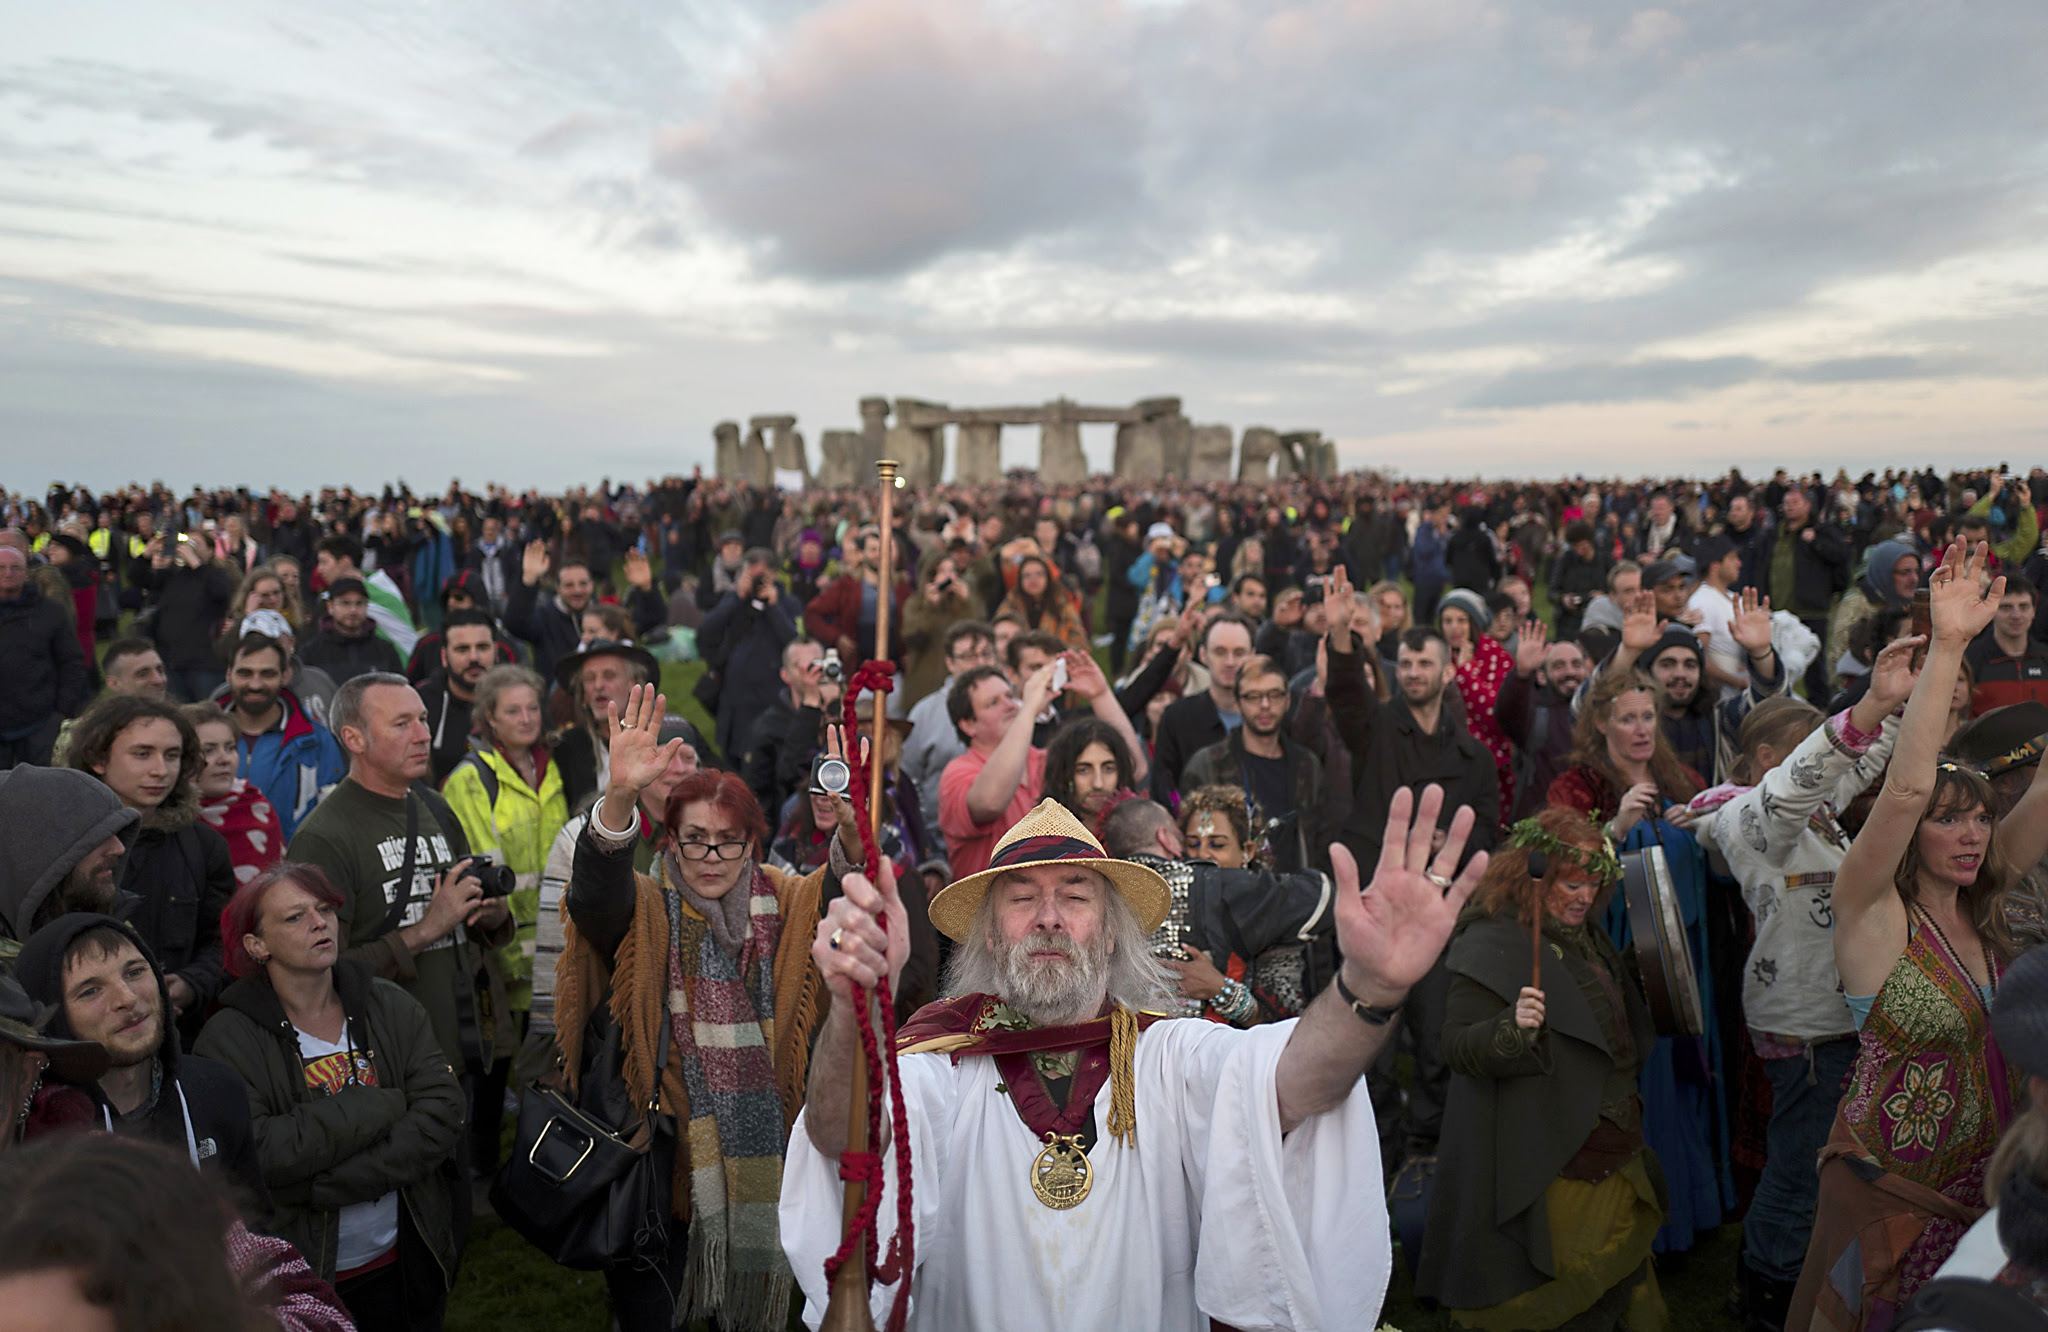 Revellers celebrate the summer solstice at Stonehenge on Salisbury Plain in southern England, Britain June 21, 2016.   REUTERS/Kieran Doherty  TPX IMAGES OF THE DAY